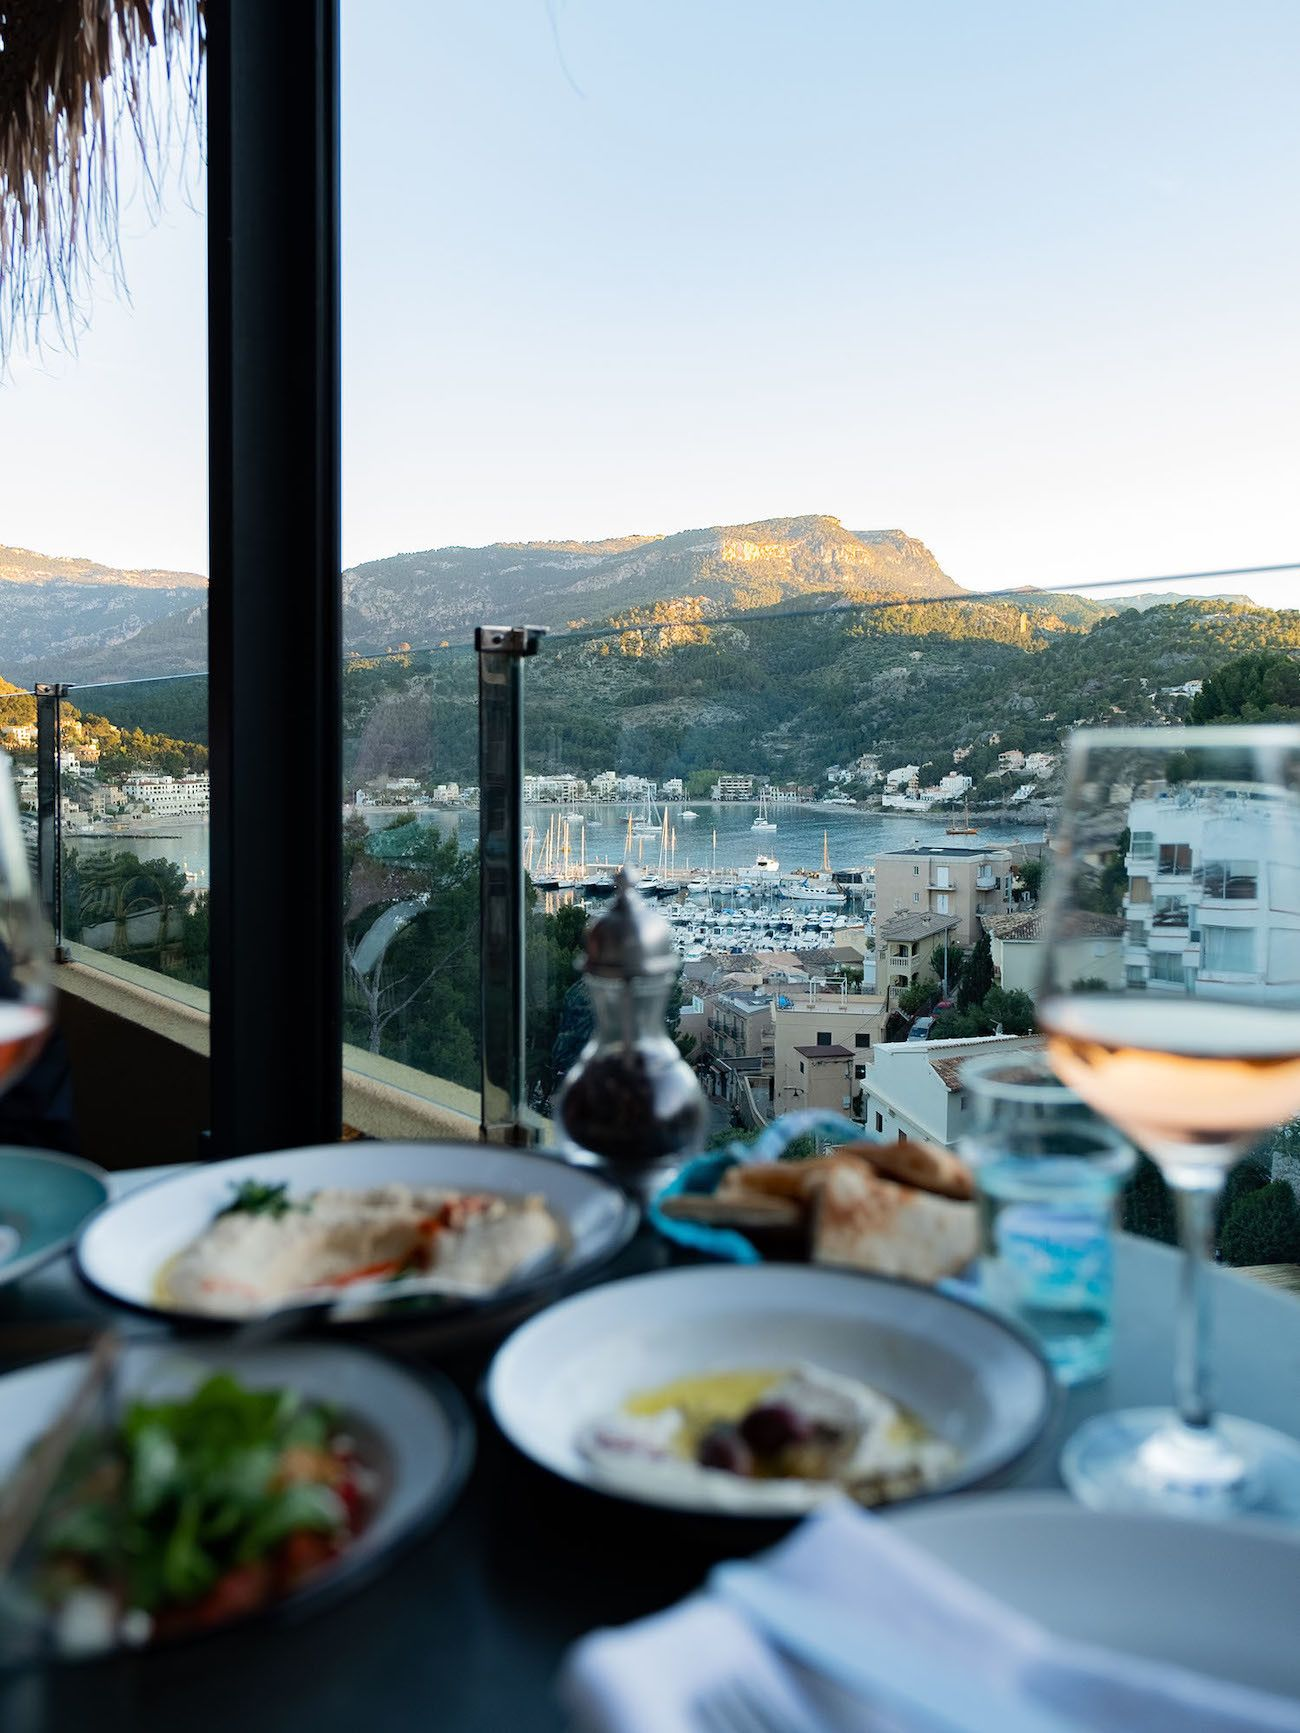 Foodblog About Fuel, Bikini Island & Mountain Hotels, Dinner, Wein